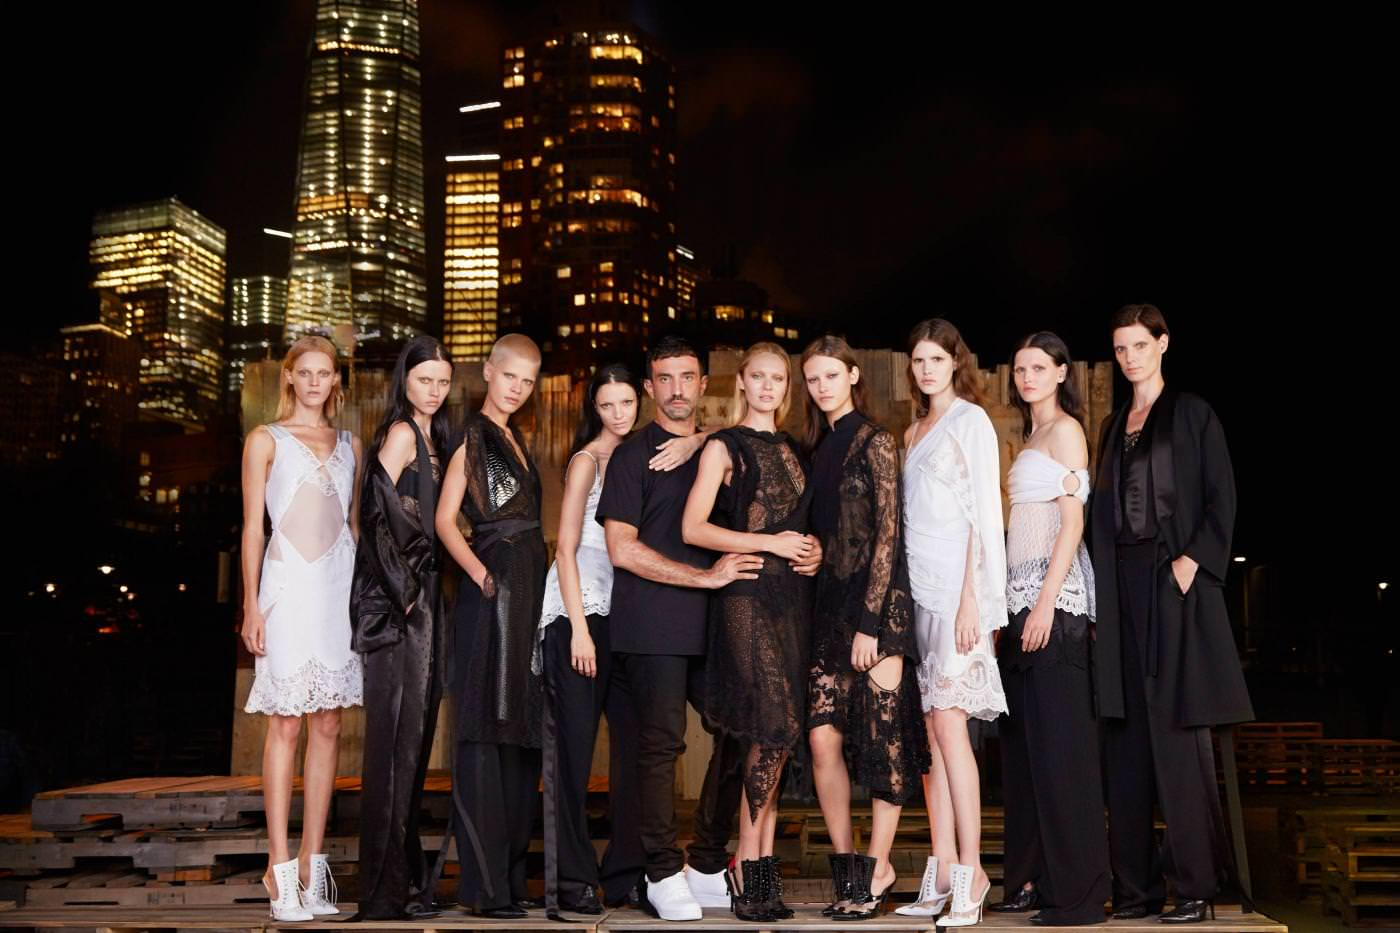 Riccardo Tisci's anniversary fashion show for Givenchy in New York